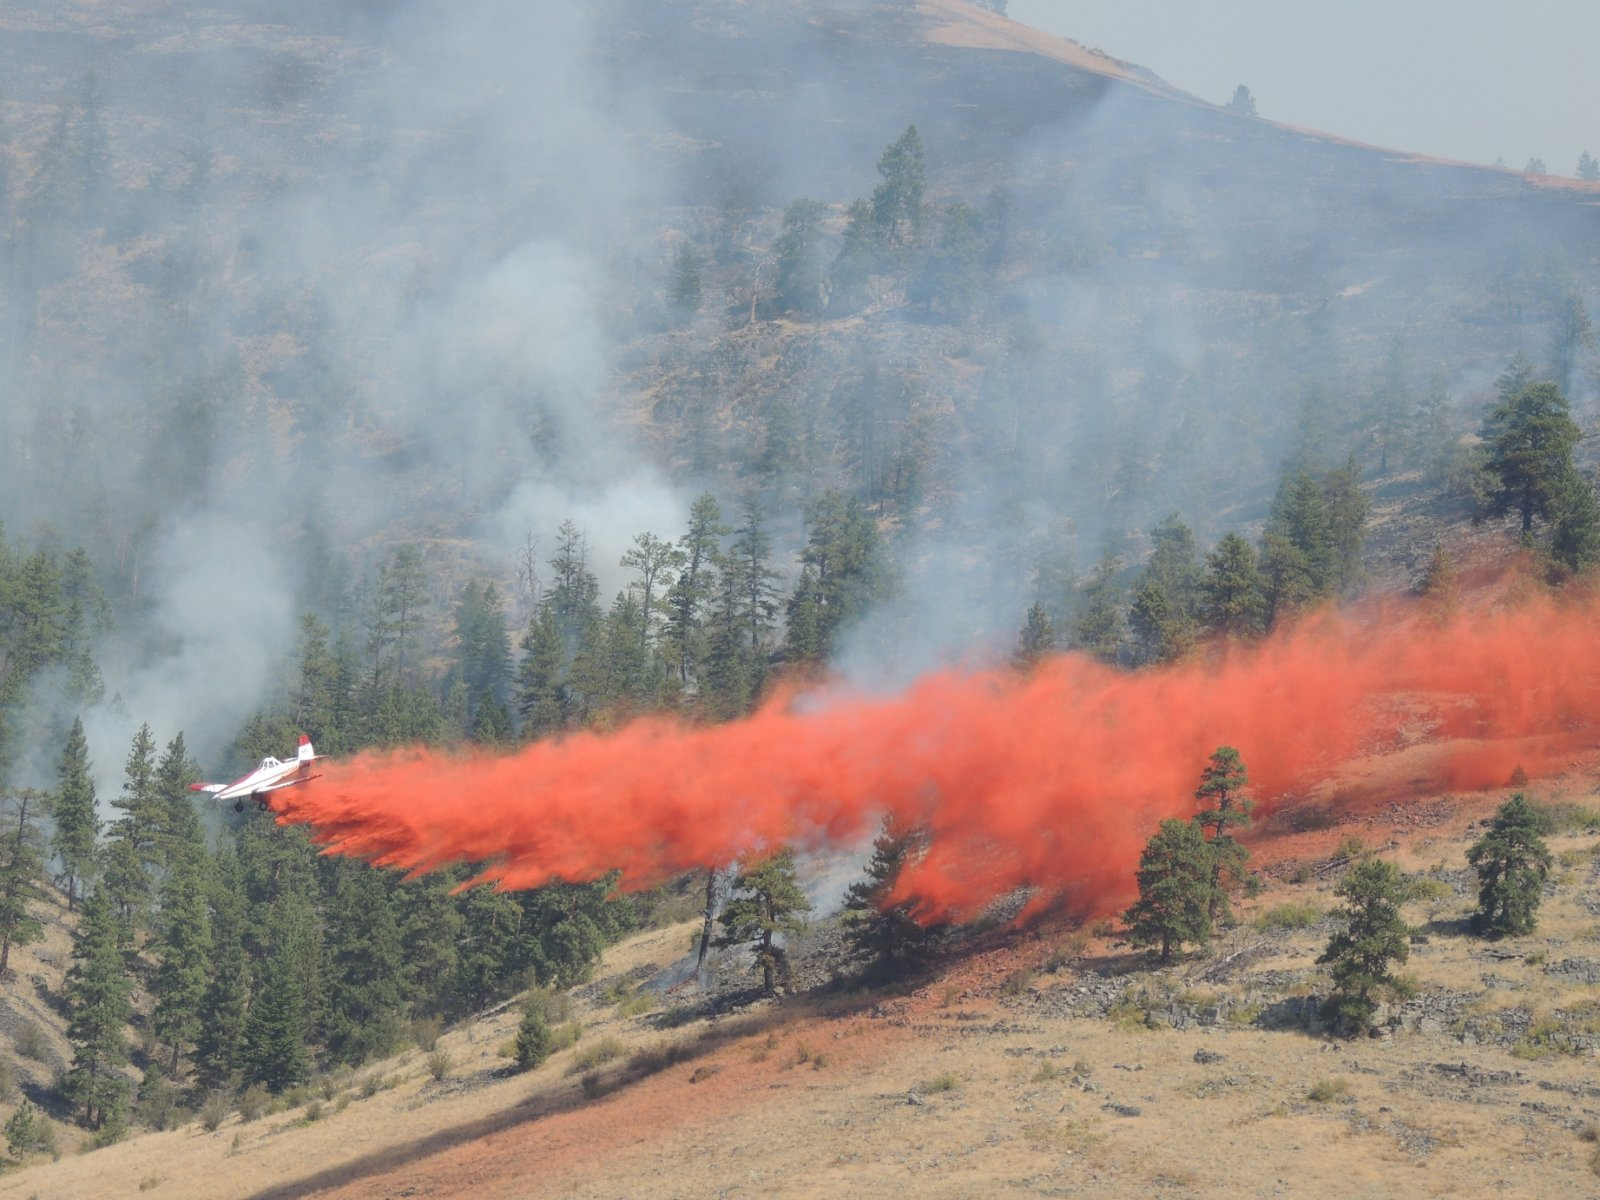 Airplane drops fire retardant on a 2012 fire in the Niobrara Valley